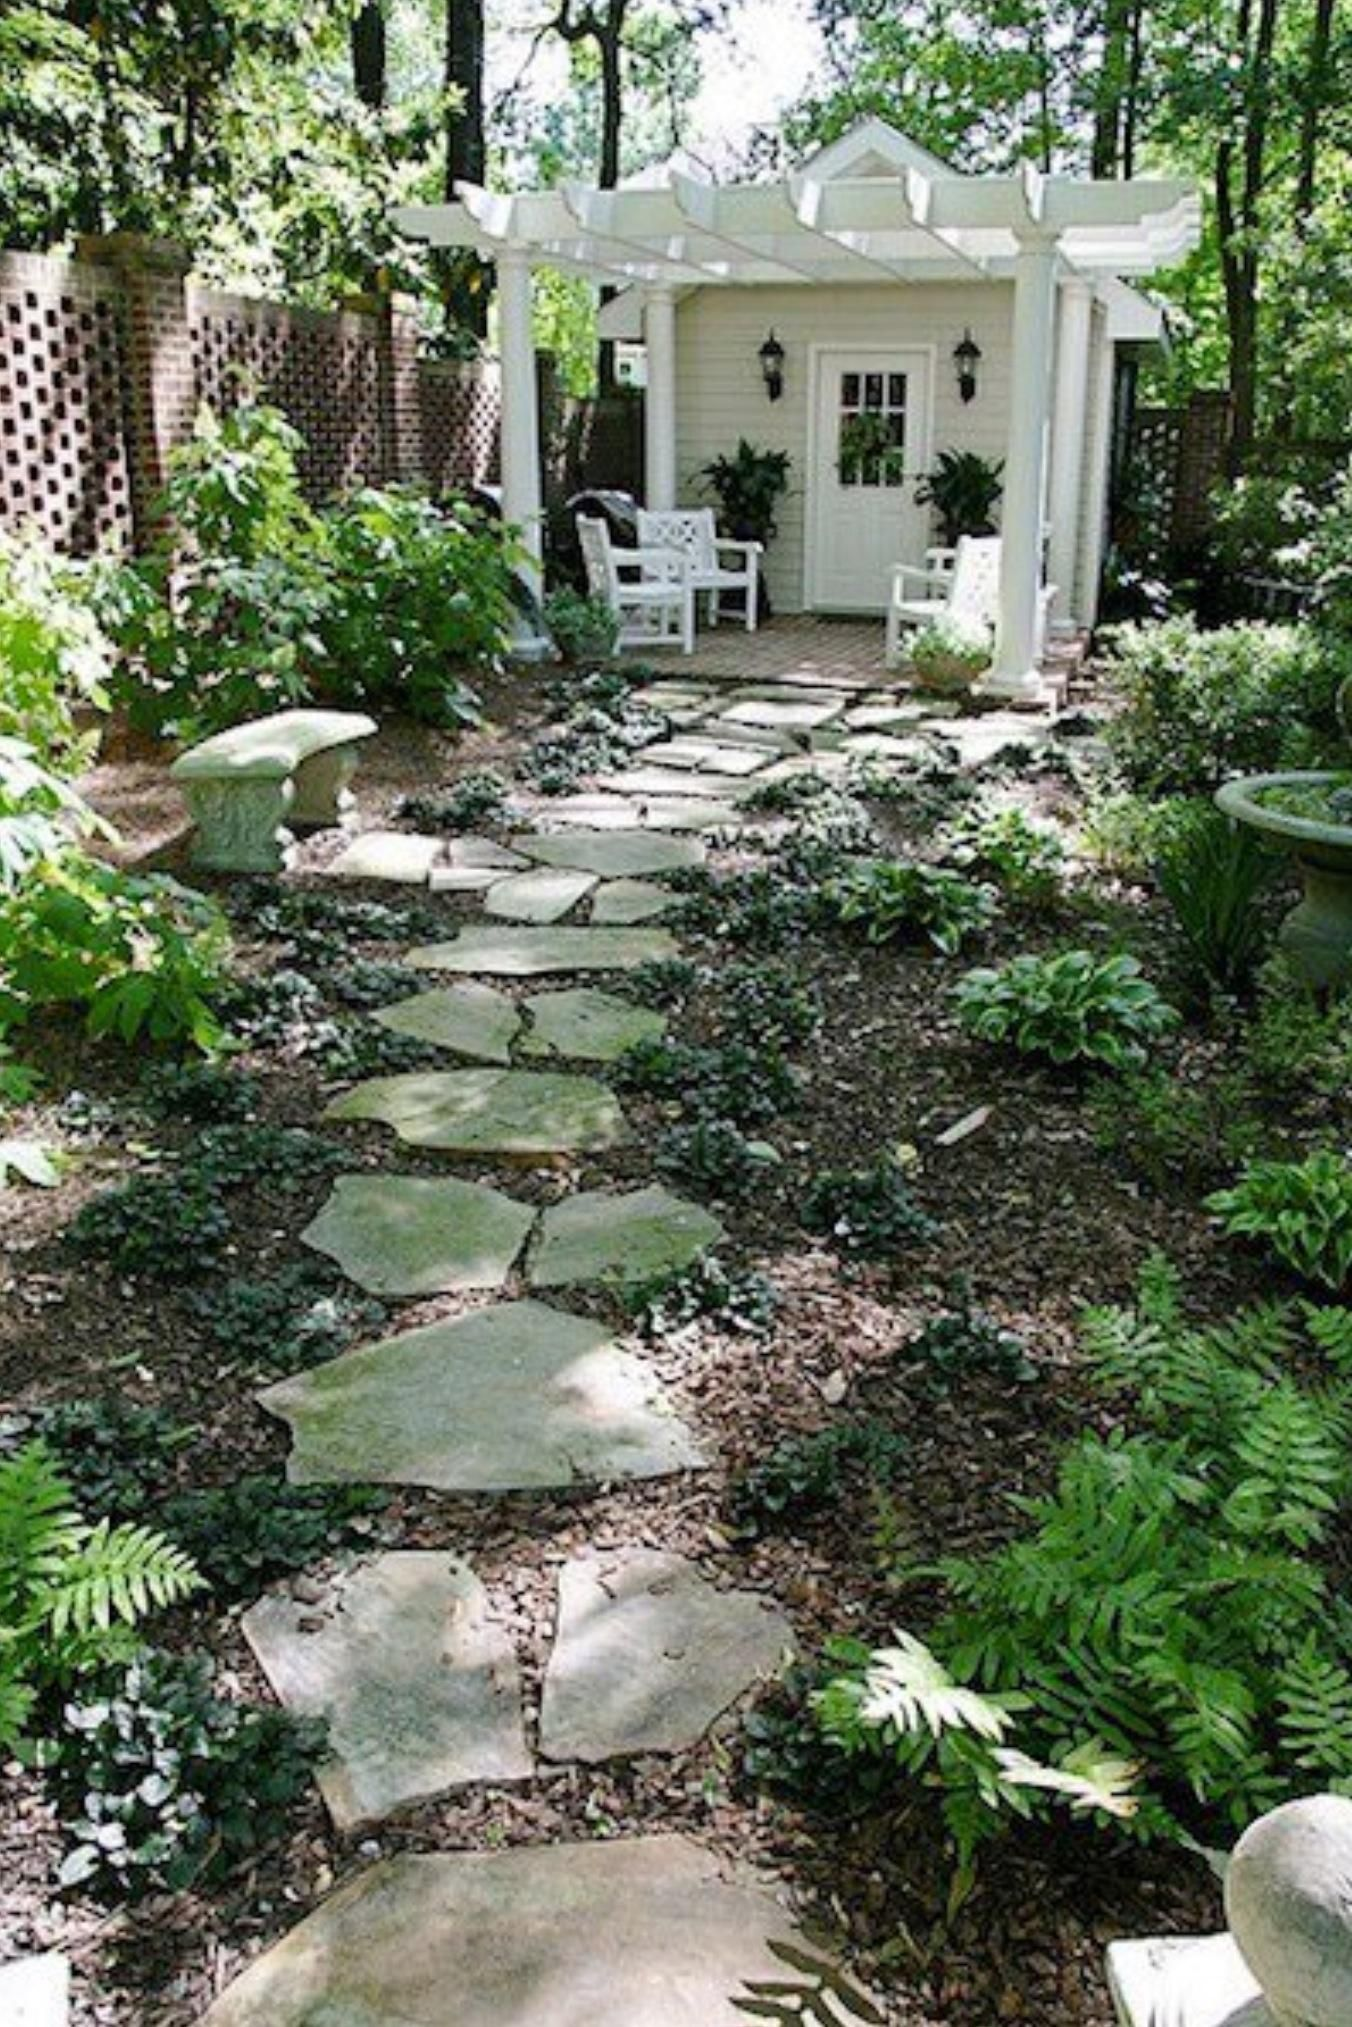 Stepping Stones Garden Cottage Garden cottage or guest house cottages tree houses garden sheds garden cottage or guest house workwithnaturefo